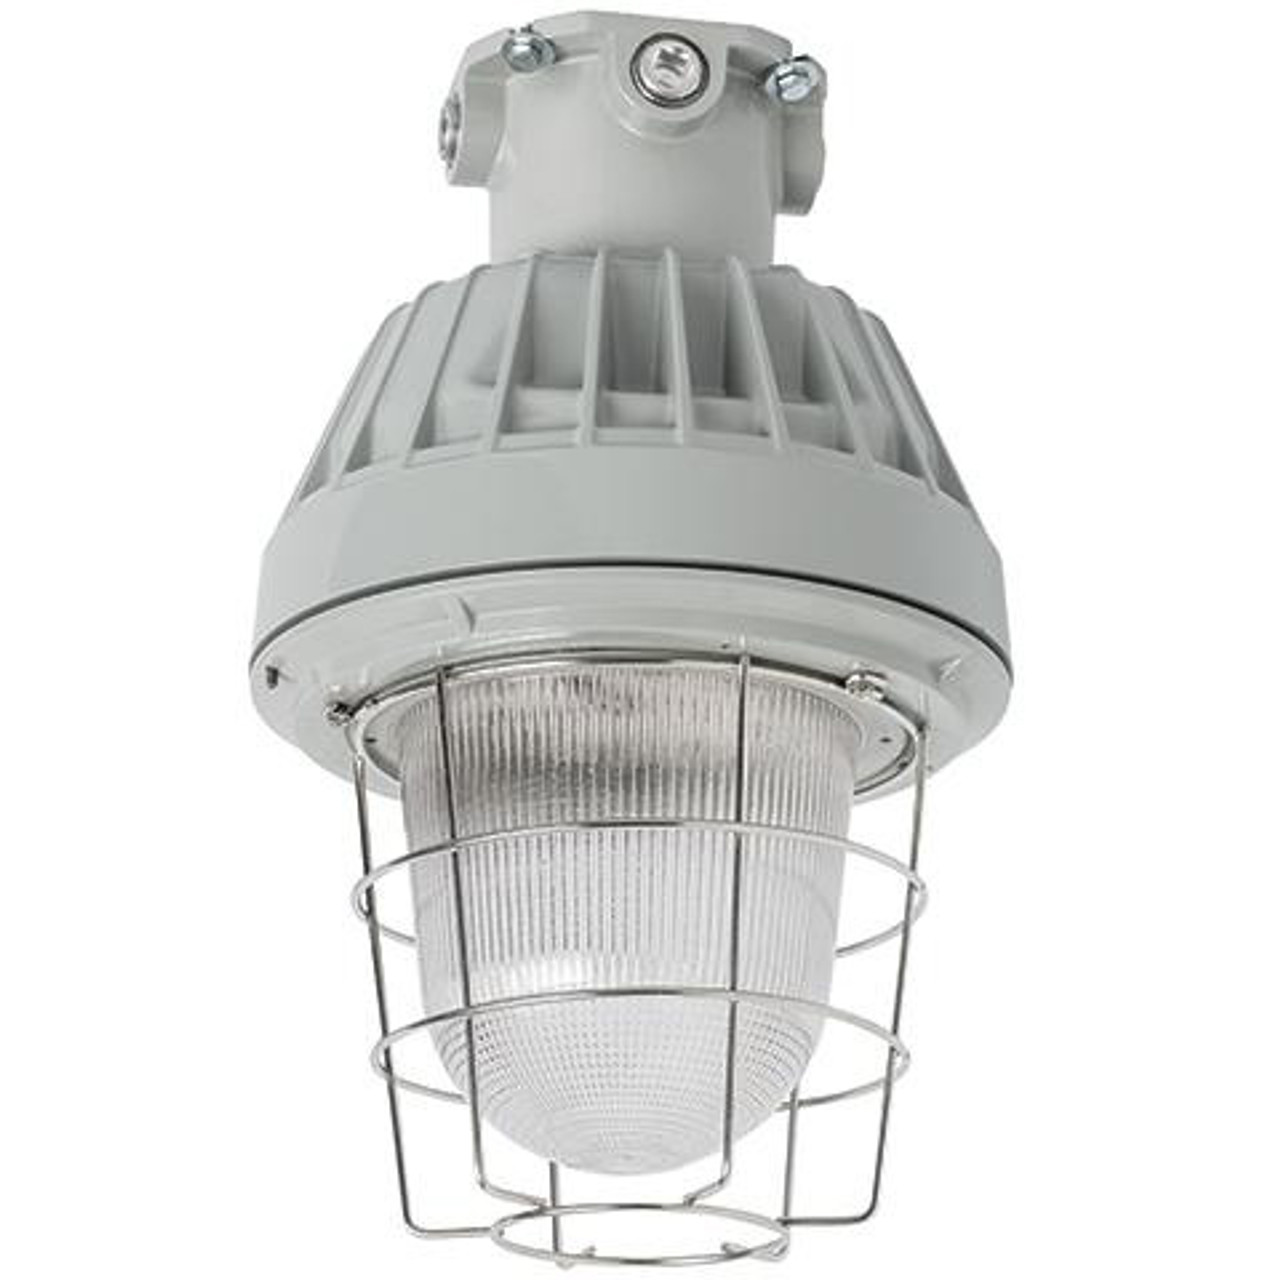 class 1 2 division 1 2 hazardous location cfl light with emergency backup